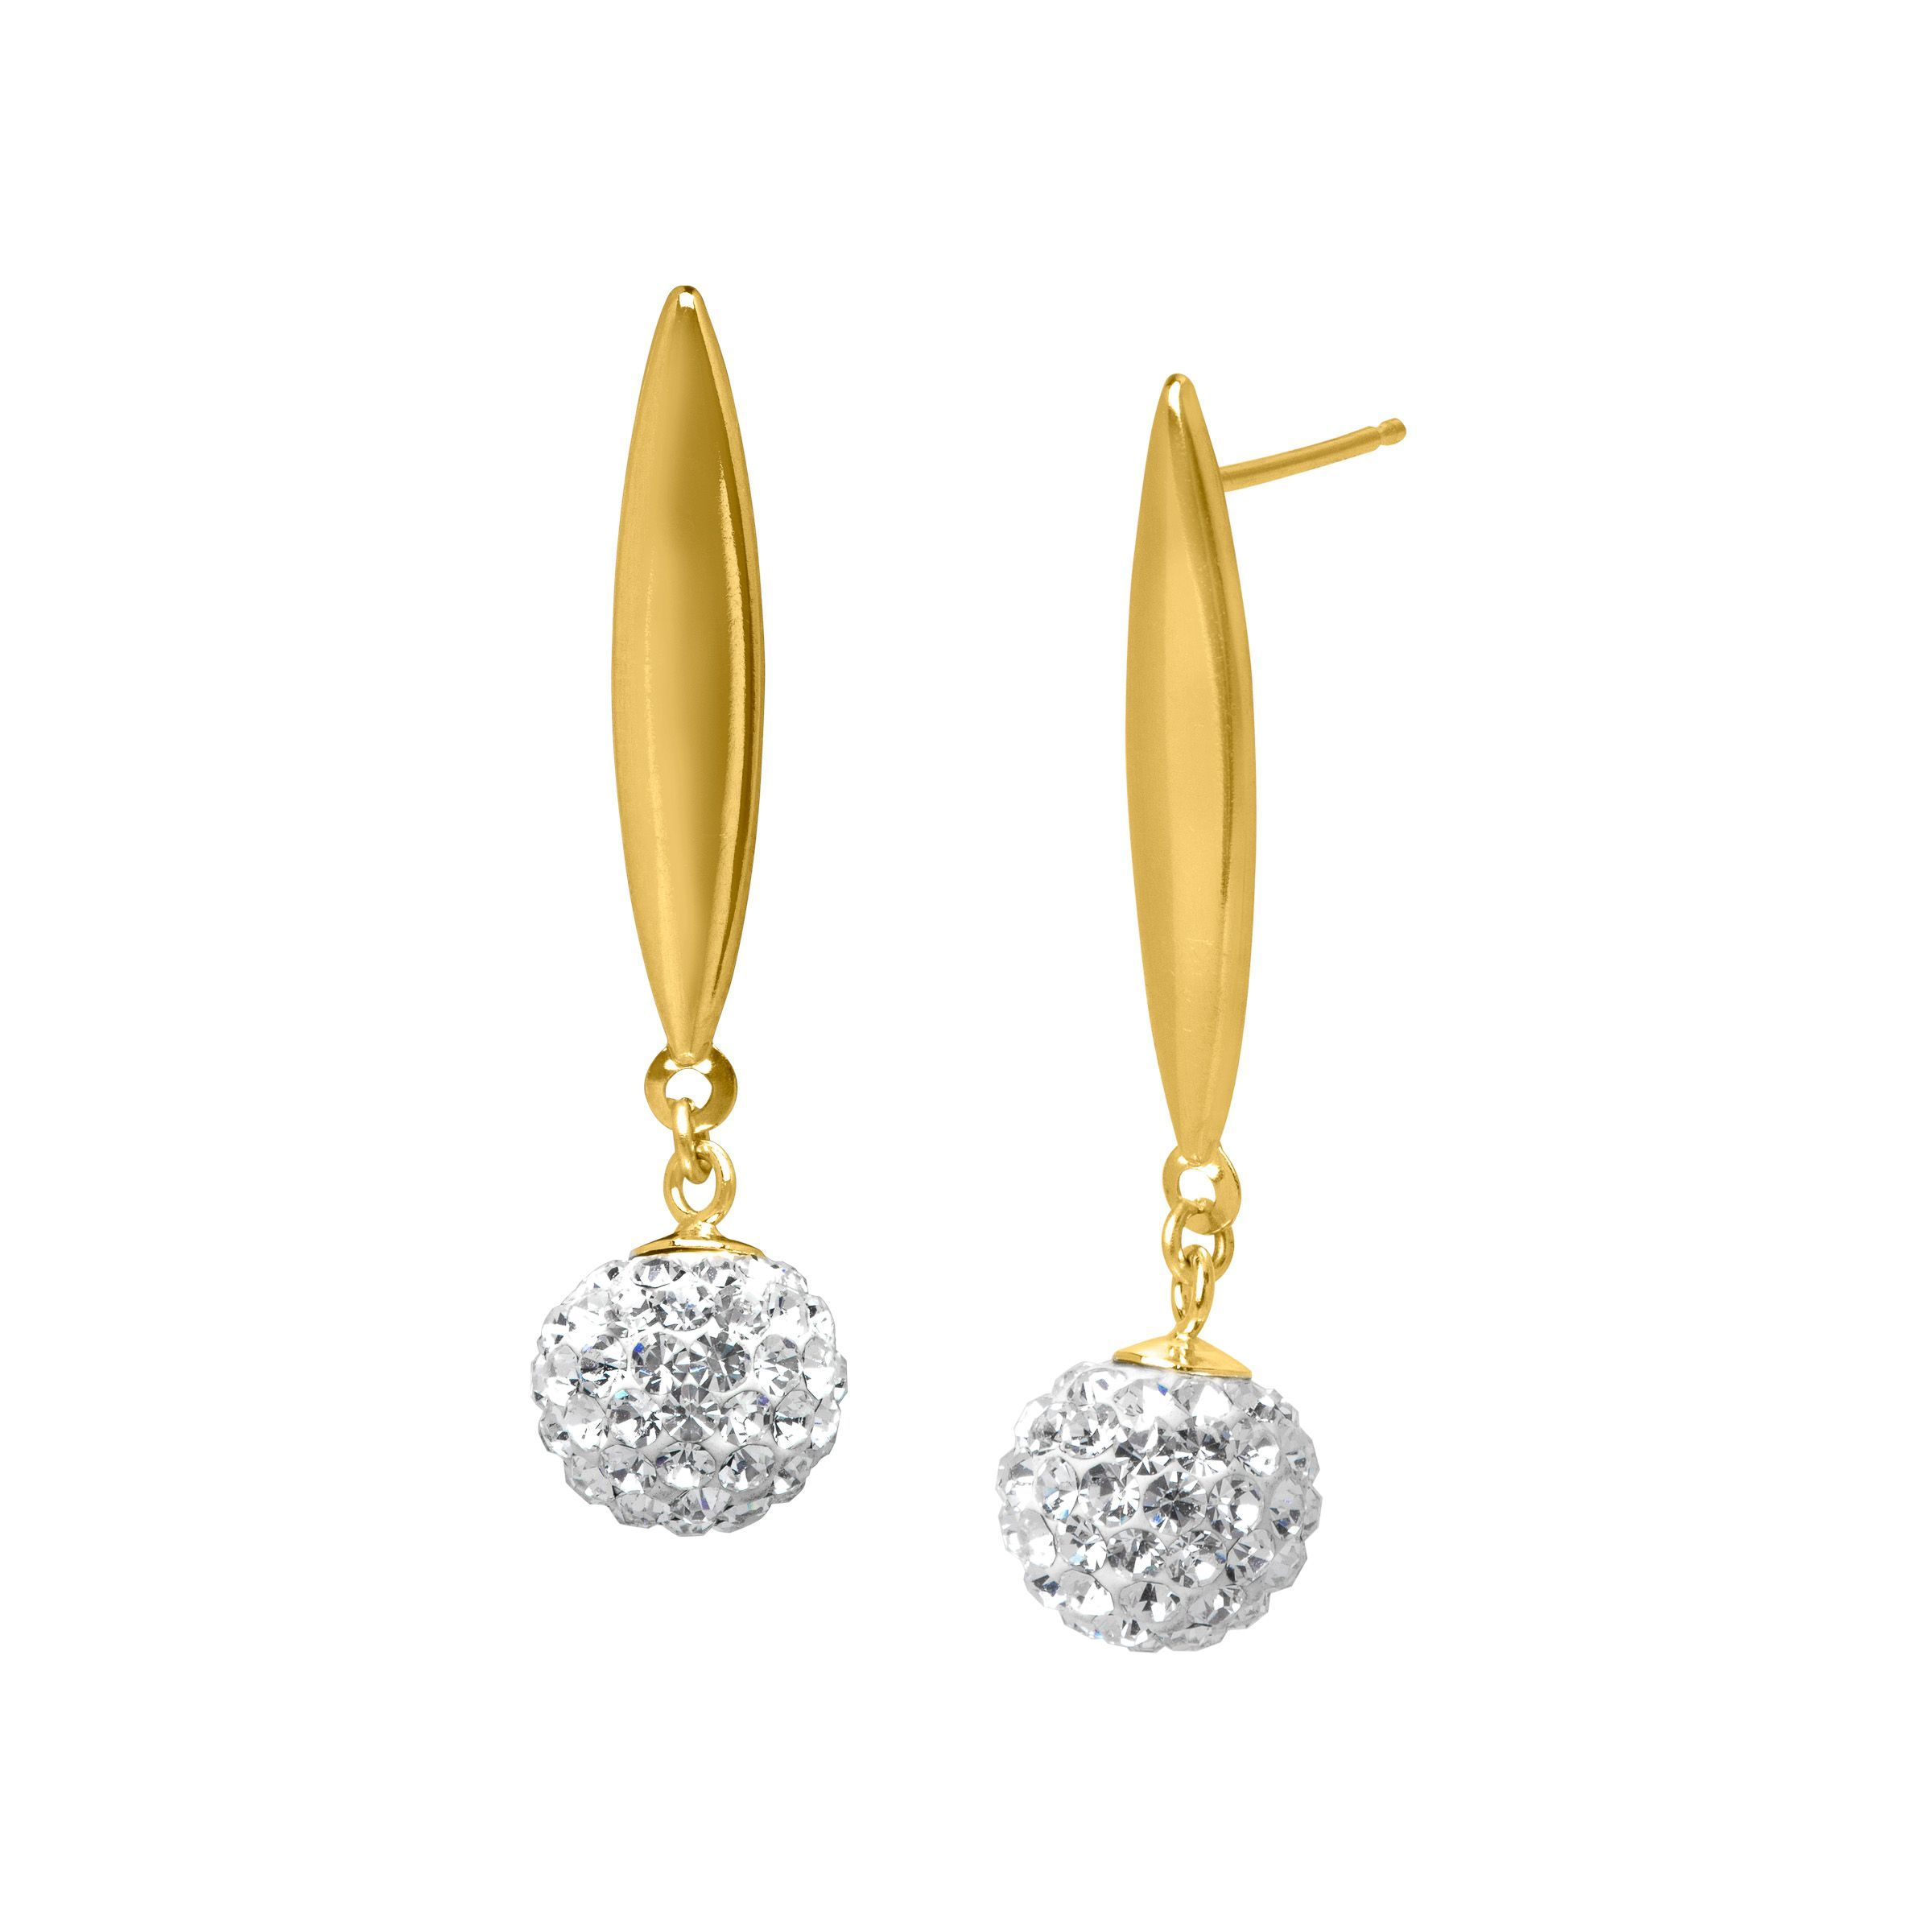 Drop Earrings with Swarovski Crystal in 14K Gold